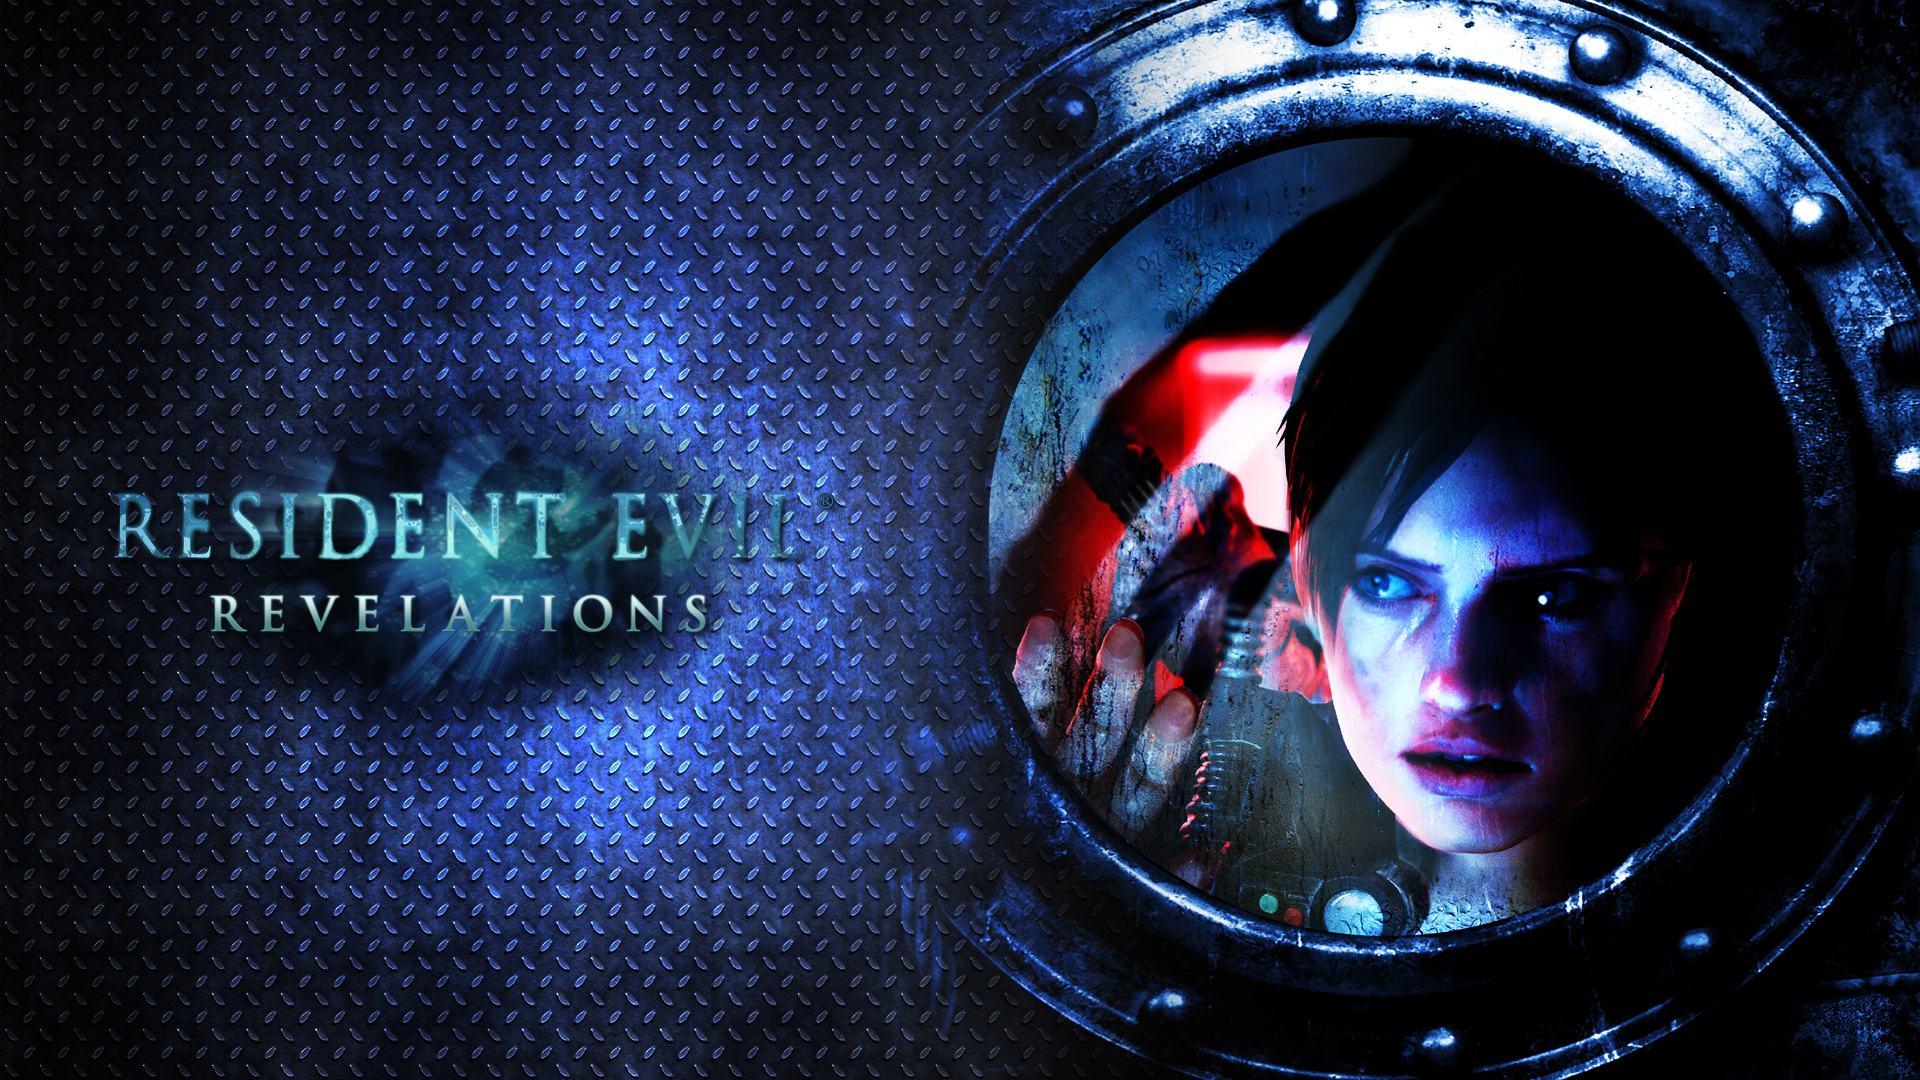 Resident Evil Revelations Wallpaper Wallpapersafari